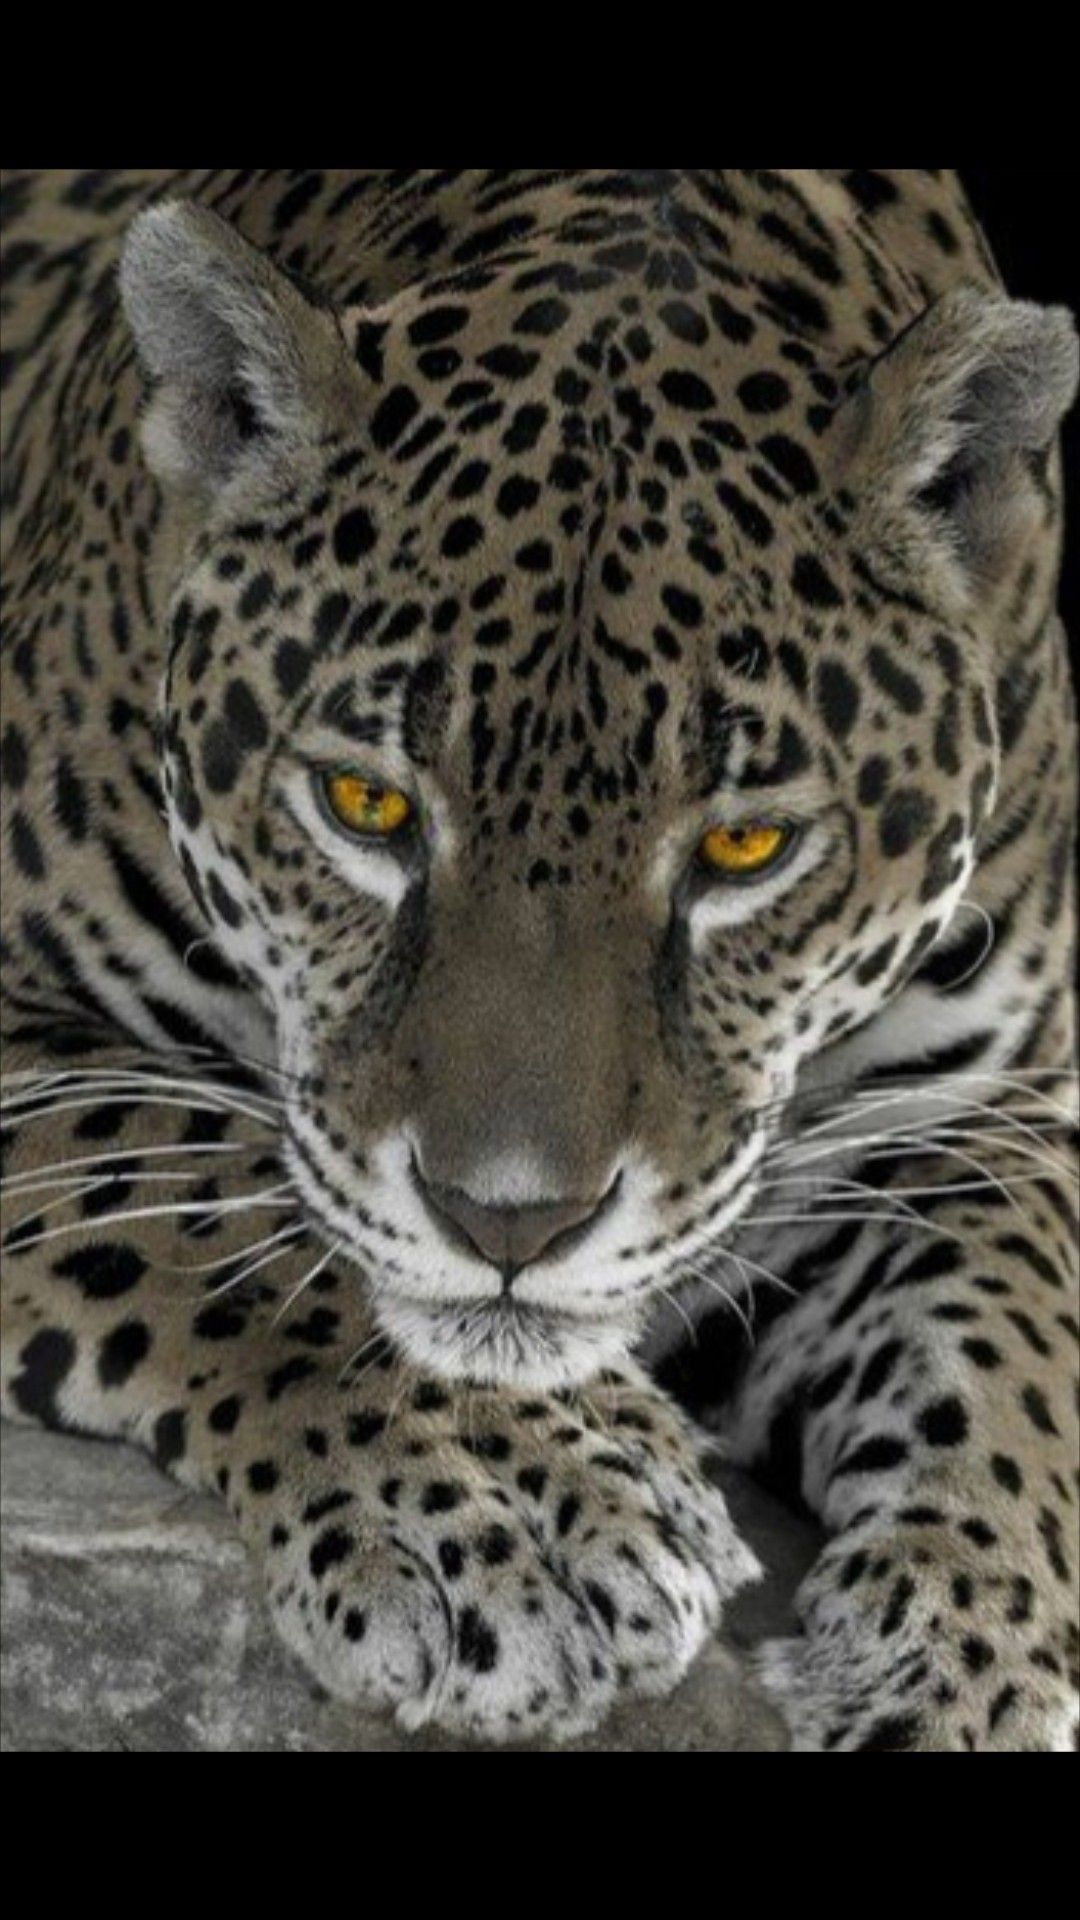 Pin By Sharon Drake All Kinds Of E On Animales In 2020 Animals Animals Beautiful Wild Cats